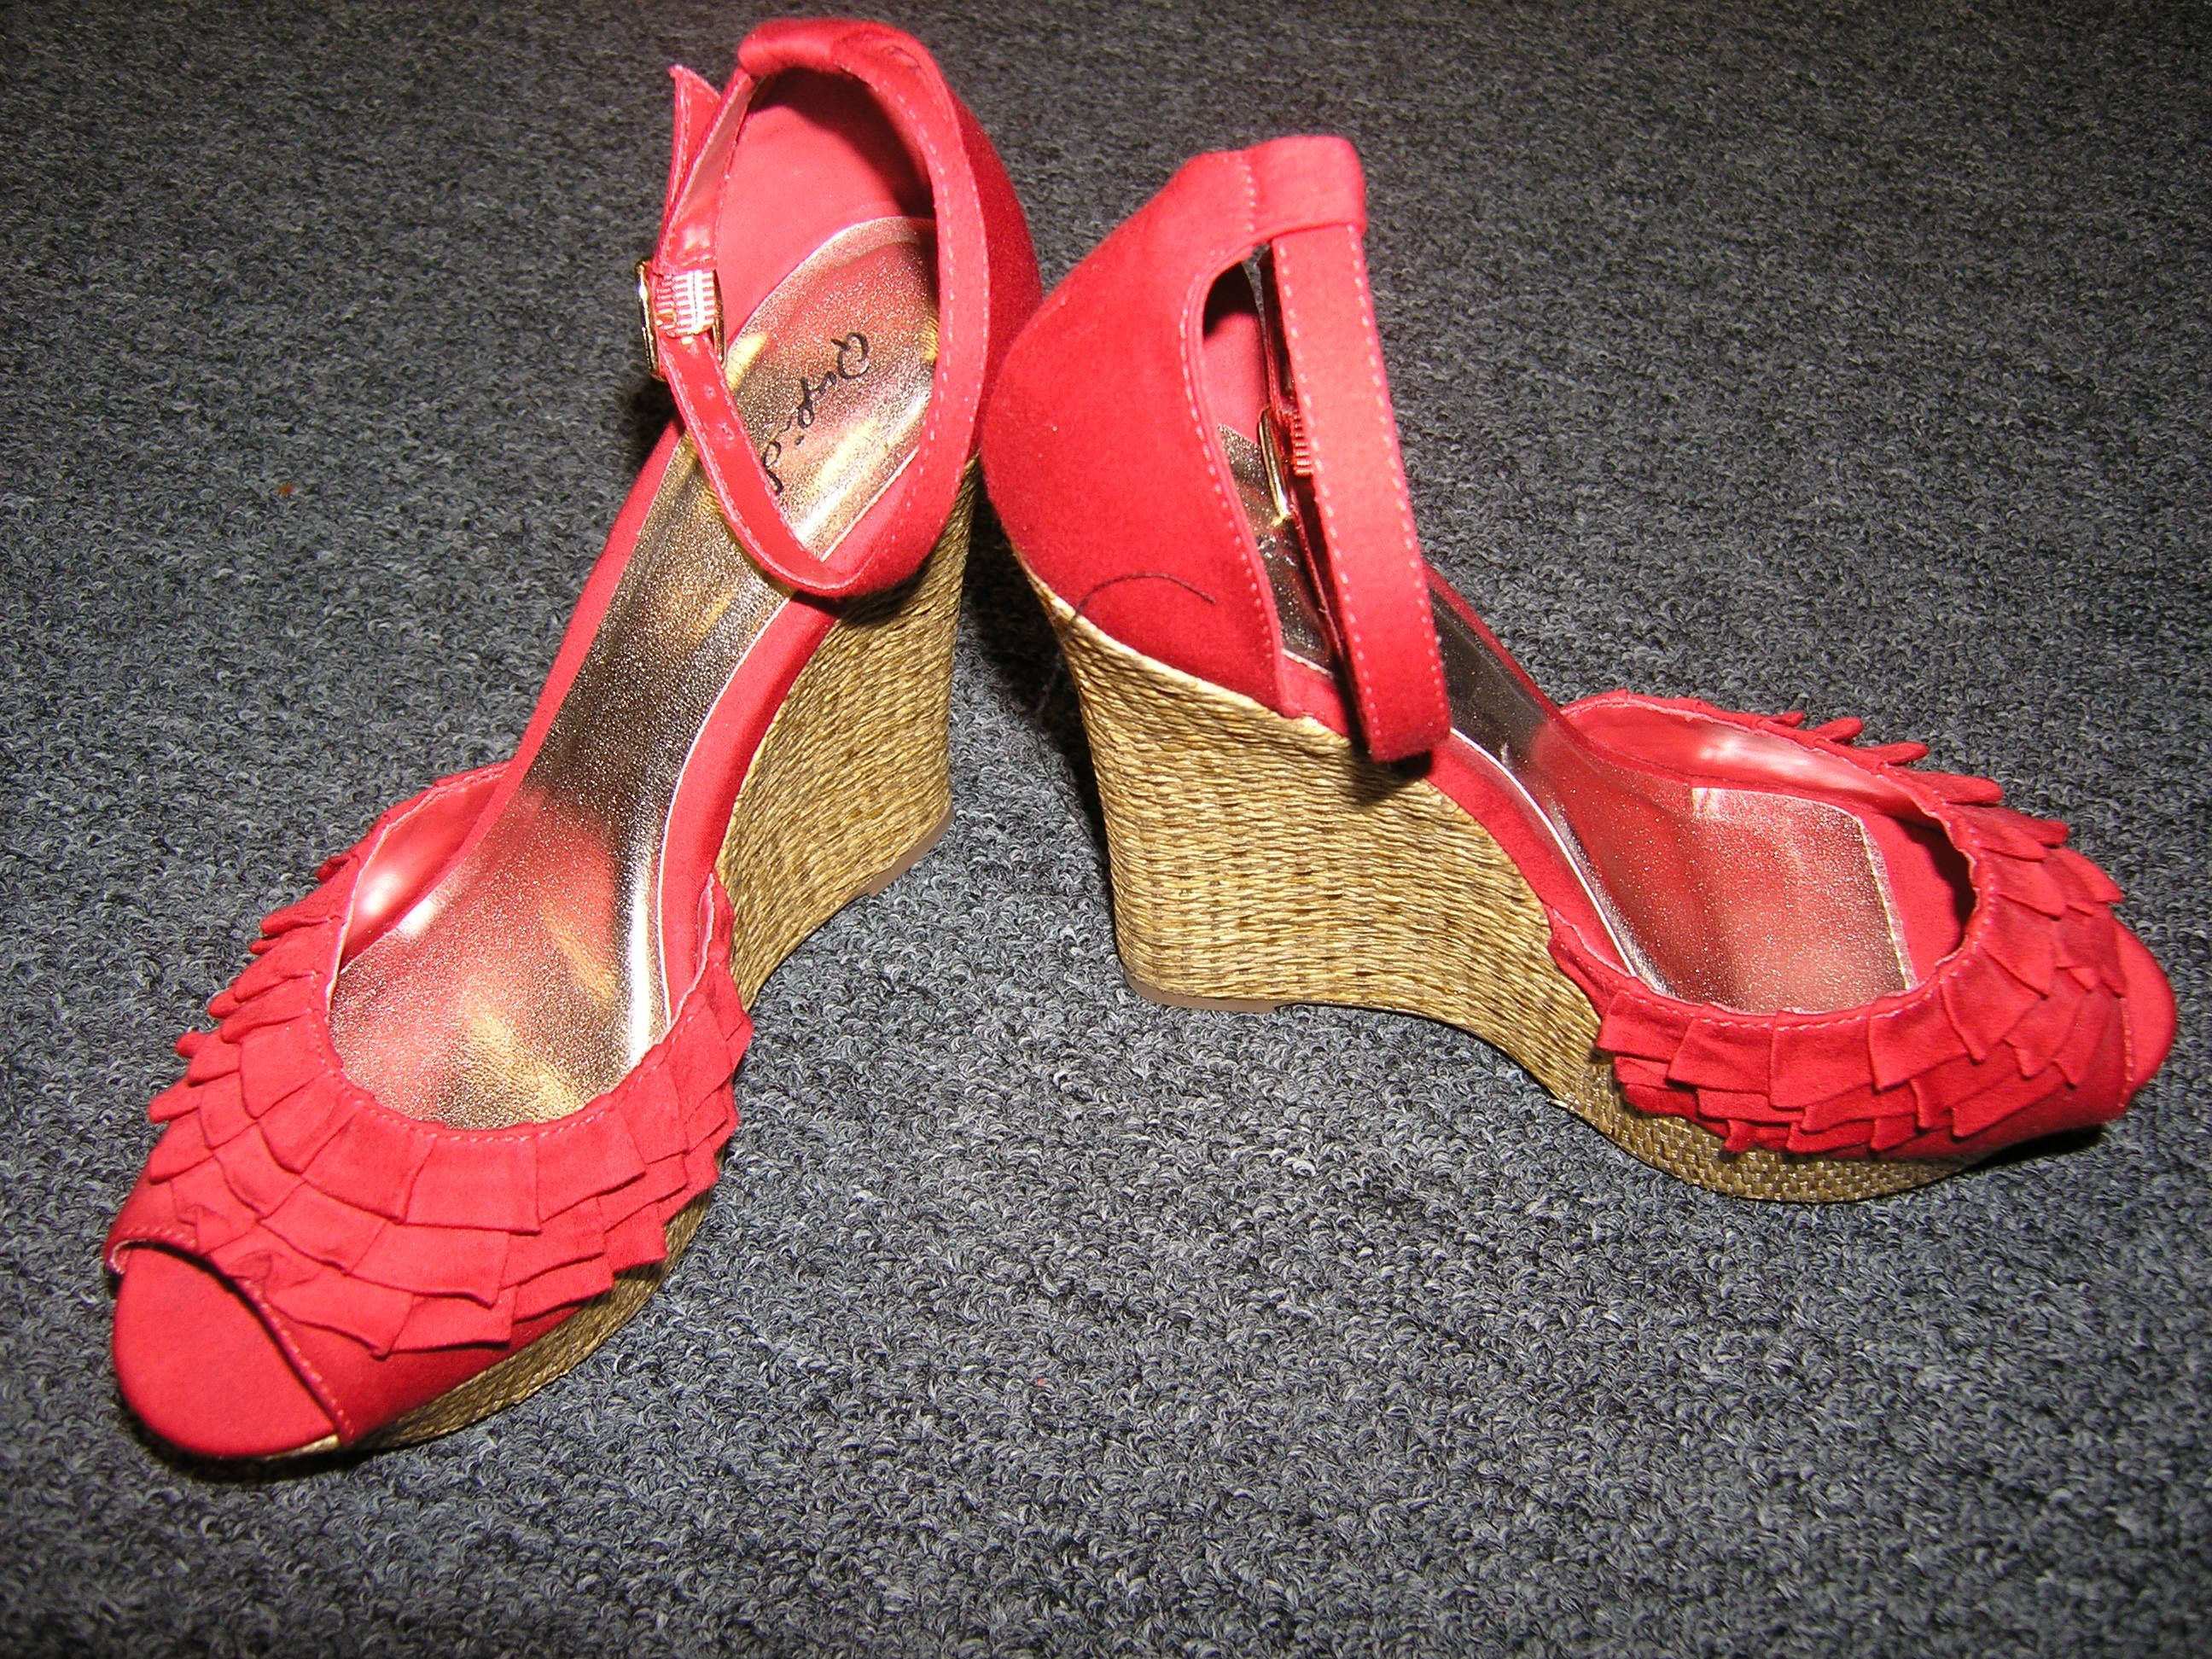 Red Ruffle Wedges w/ open toe- $49.99 by QUPID Size 8